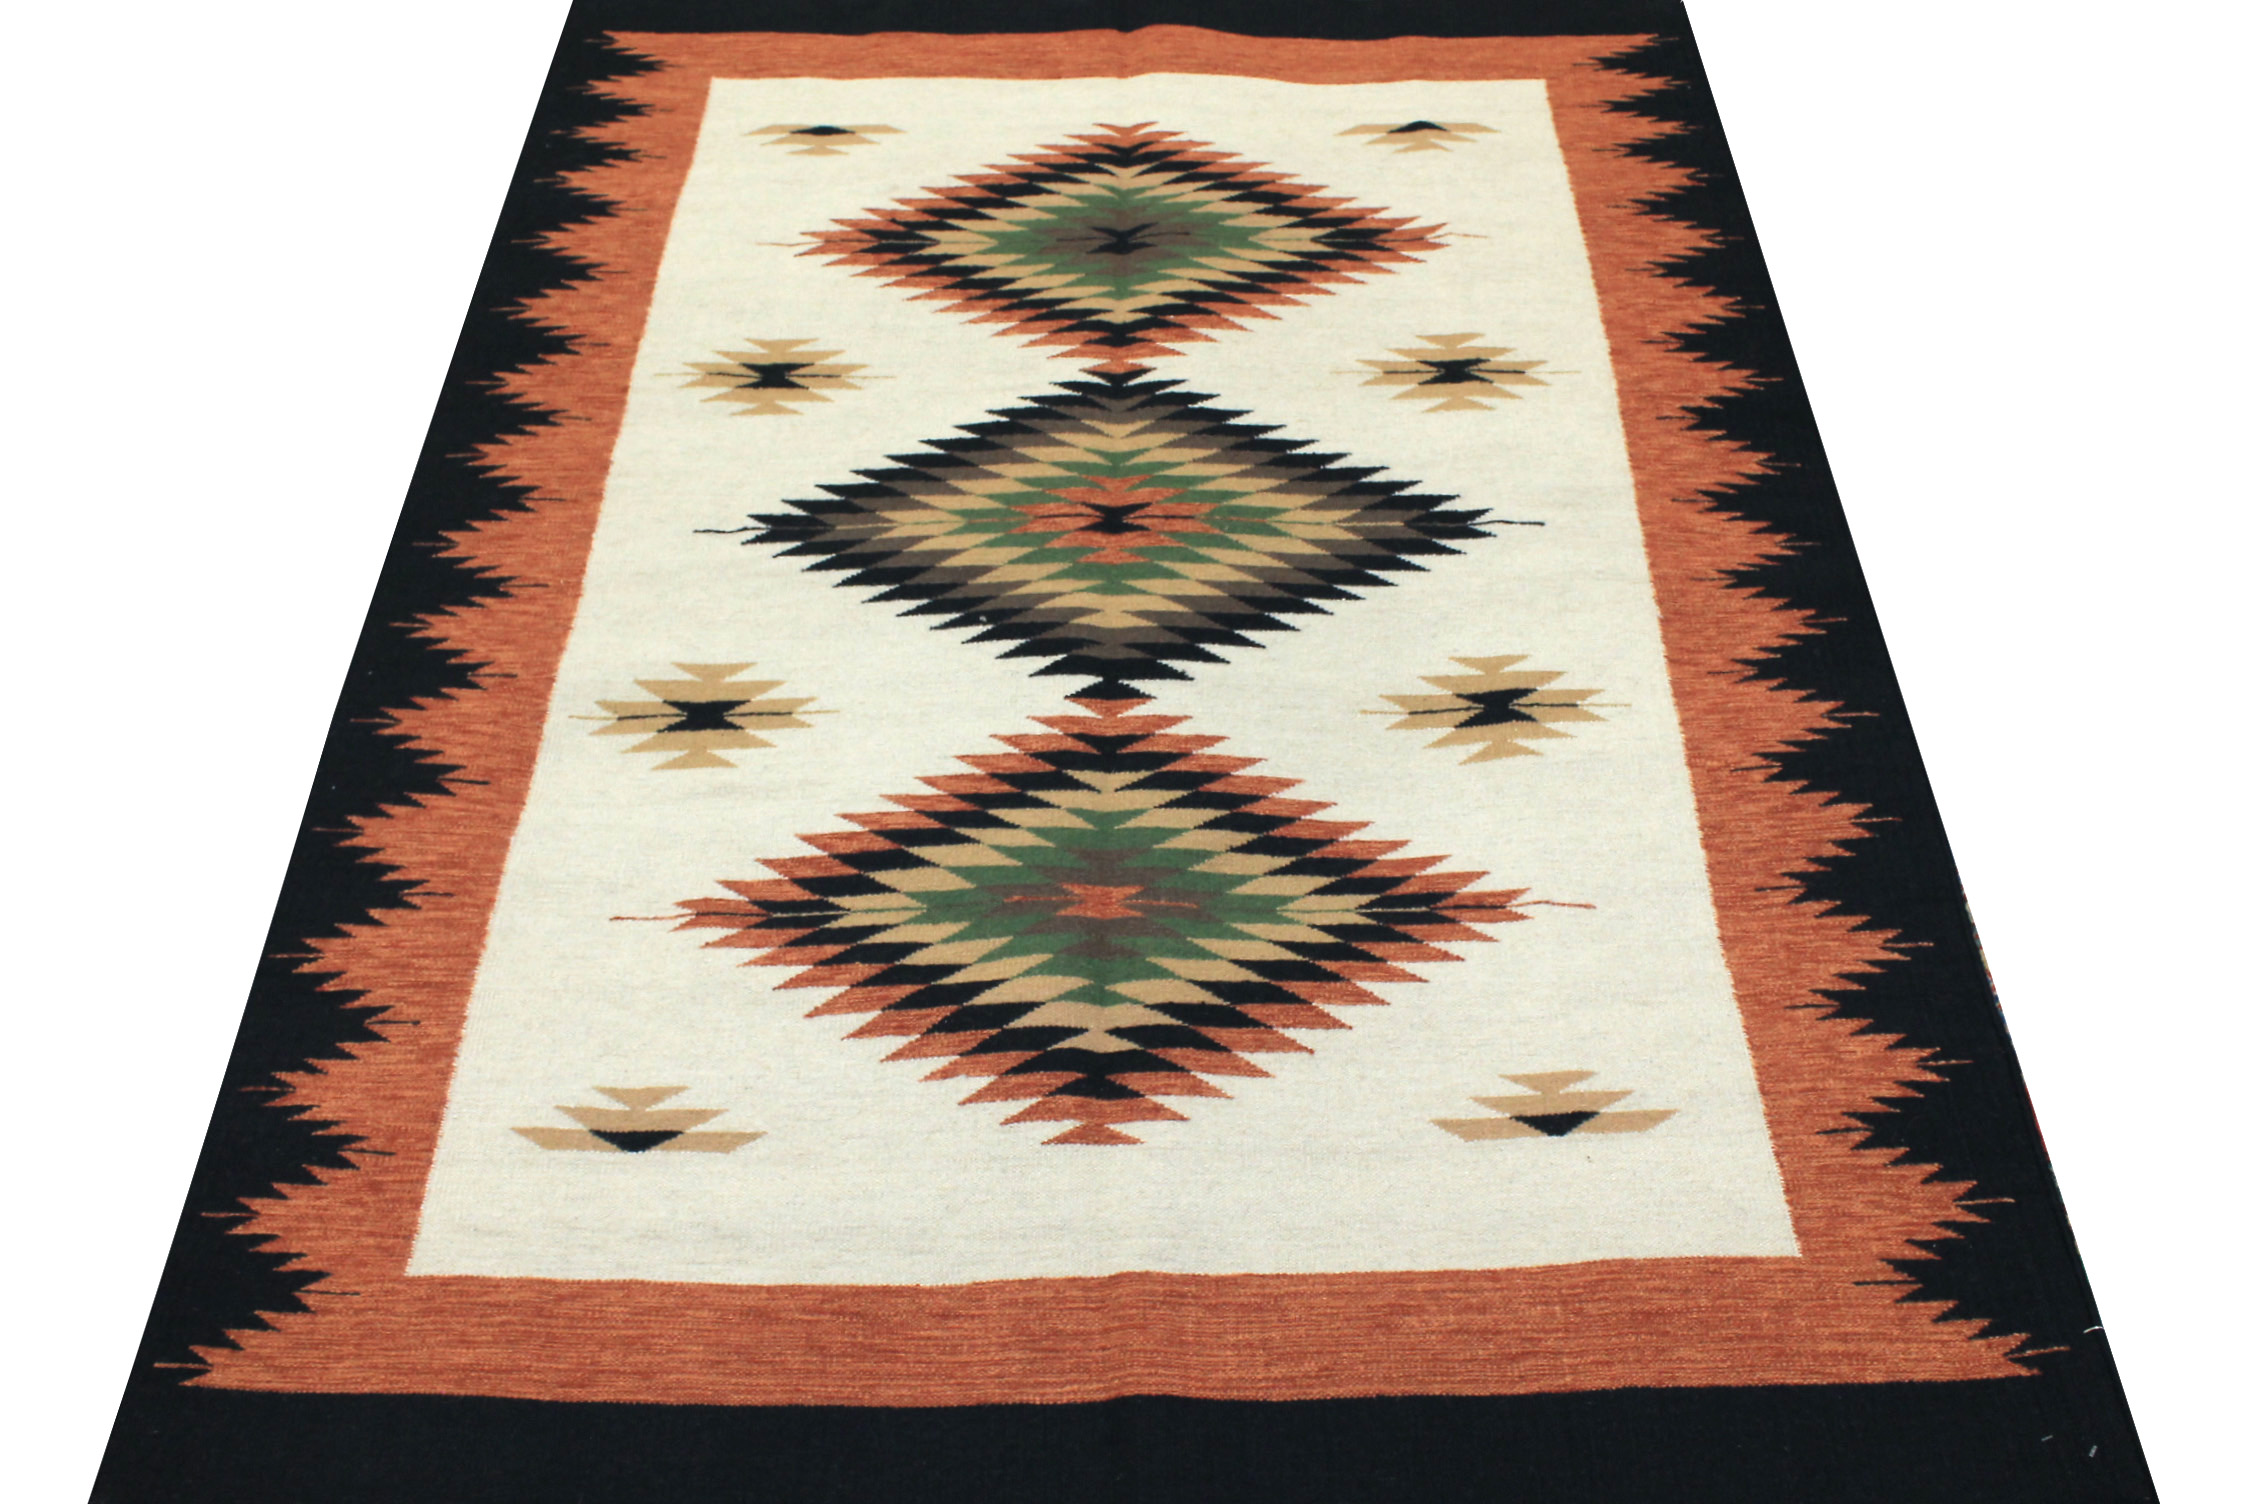 5x7/8 Flat Weave Hand Knotted Wool Area Rug - MR14174